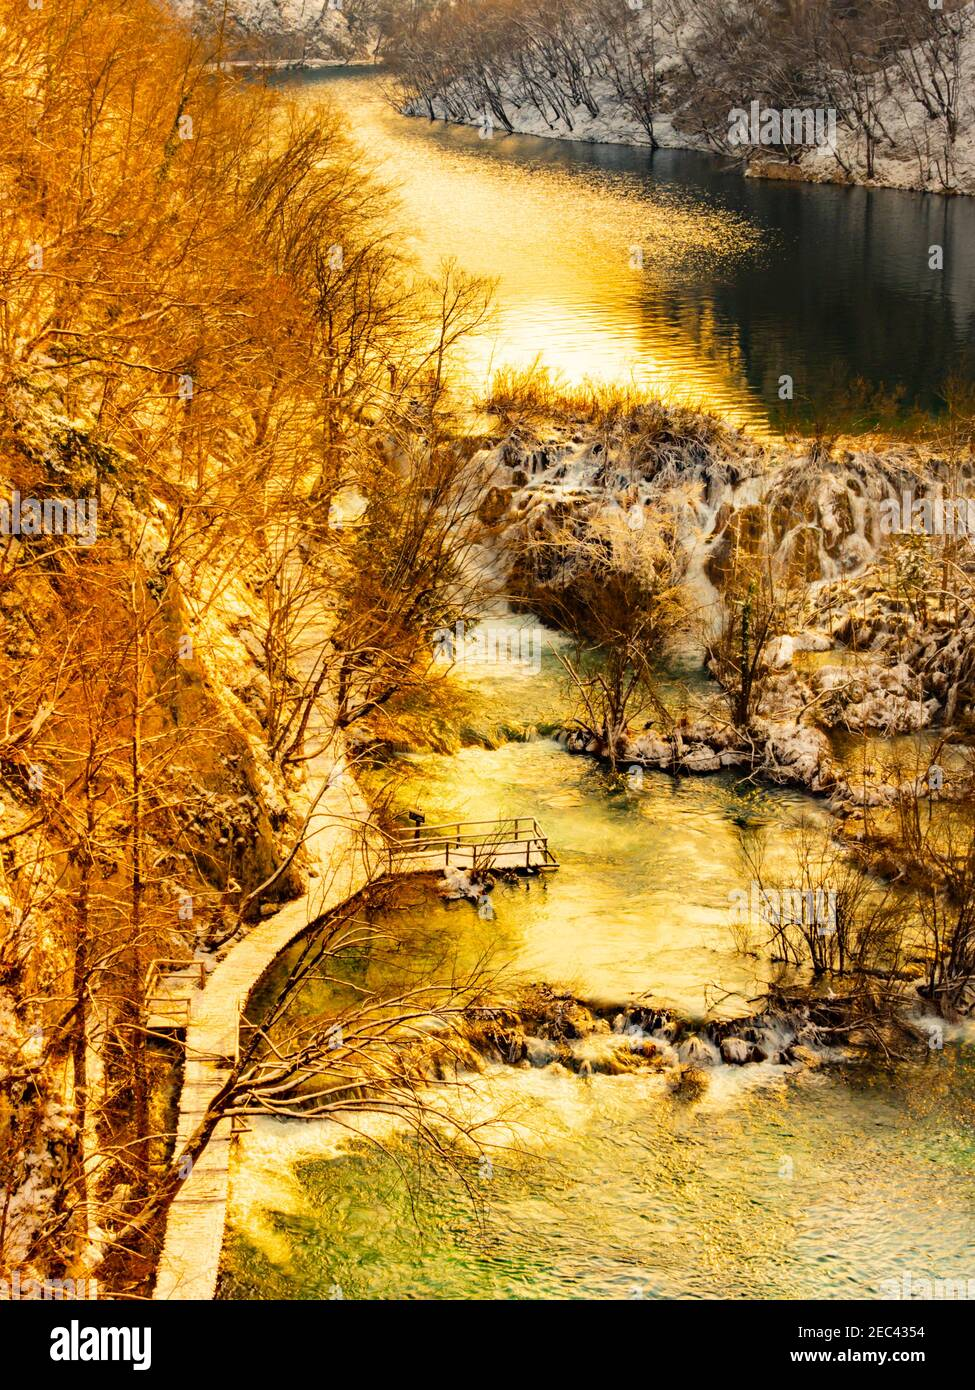 Warm light warmth sunset in national park Plitvice lakes Croatia Europe Winter waterflow water flowing flow creative altered color Stock Photo